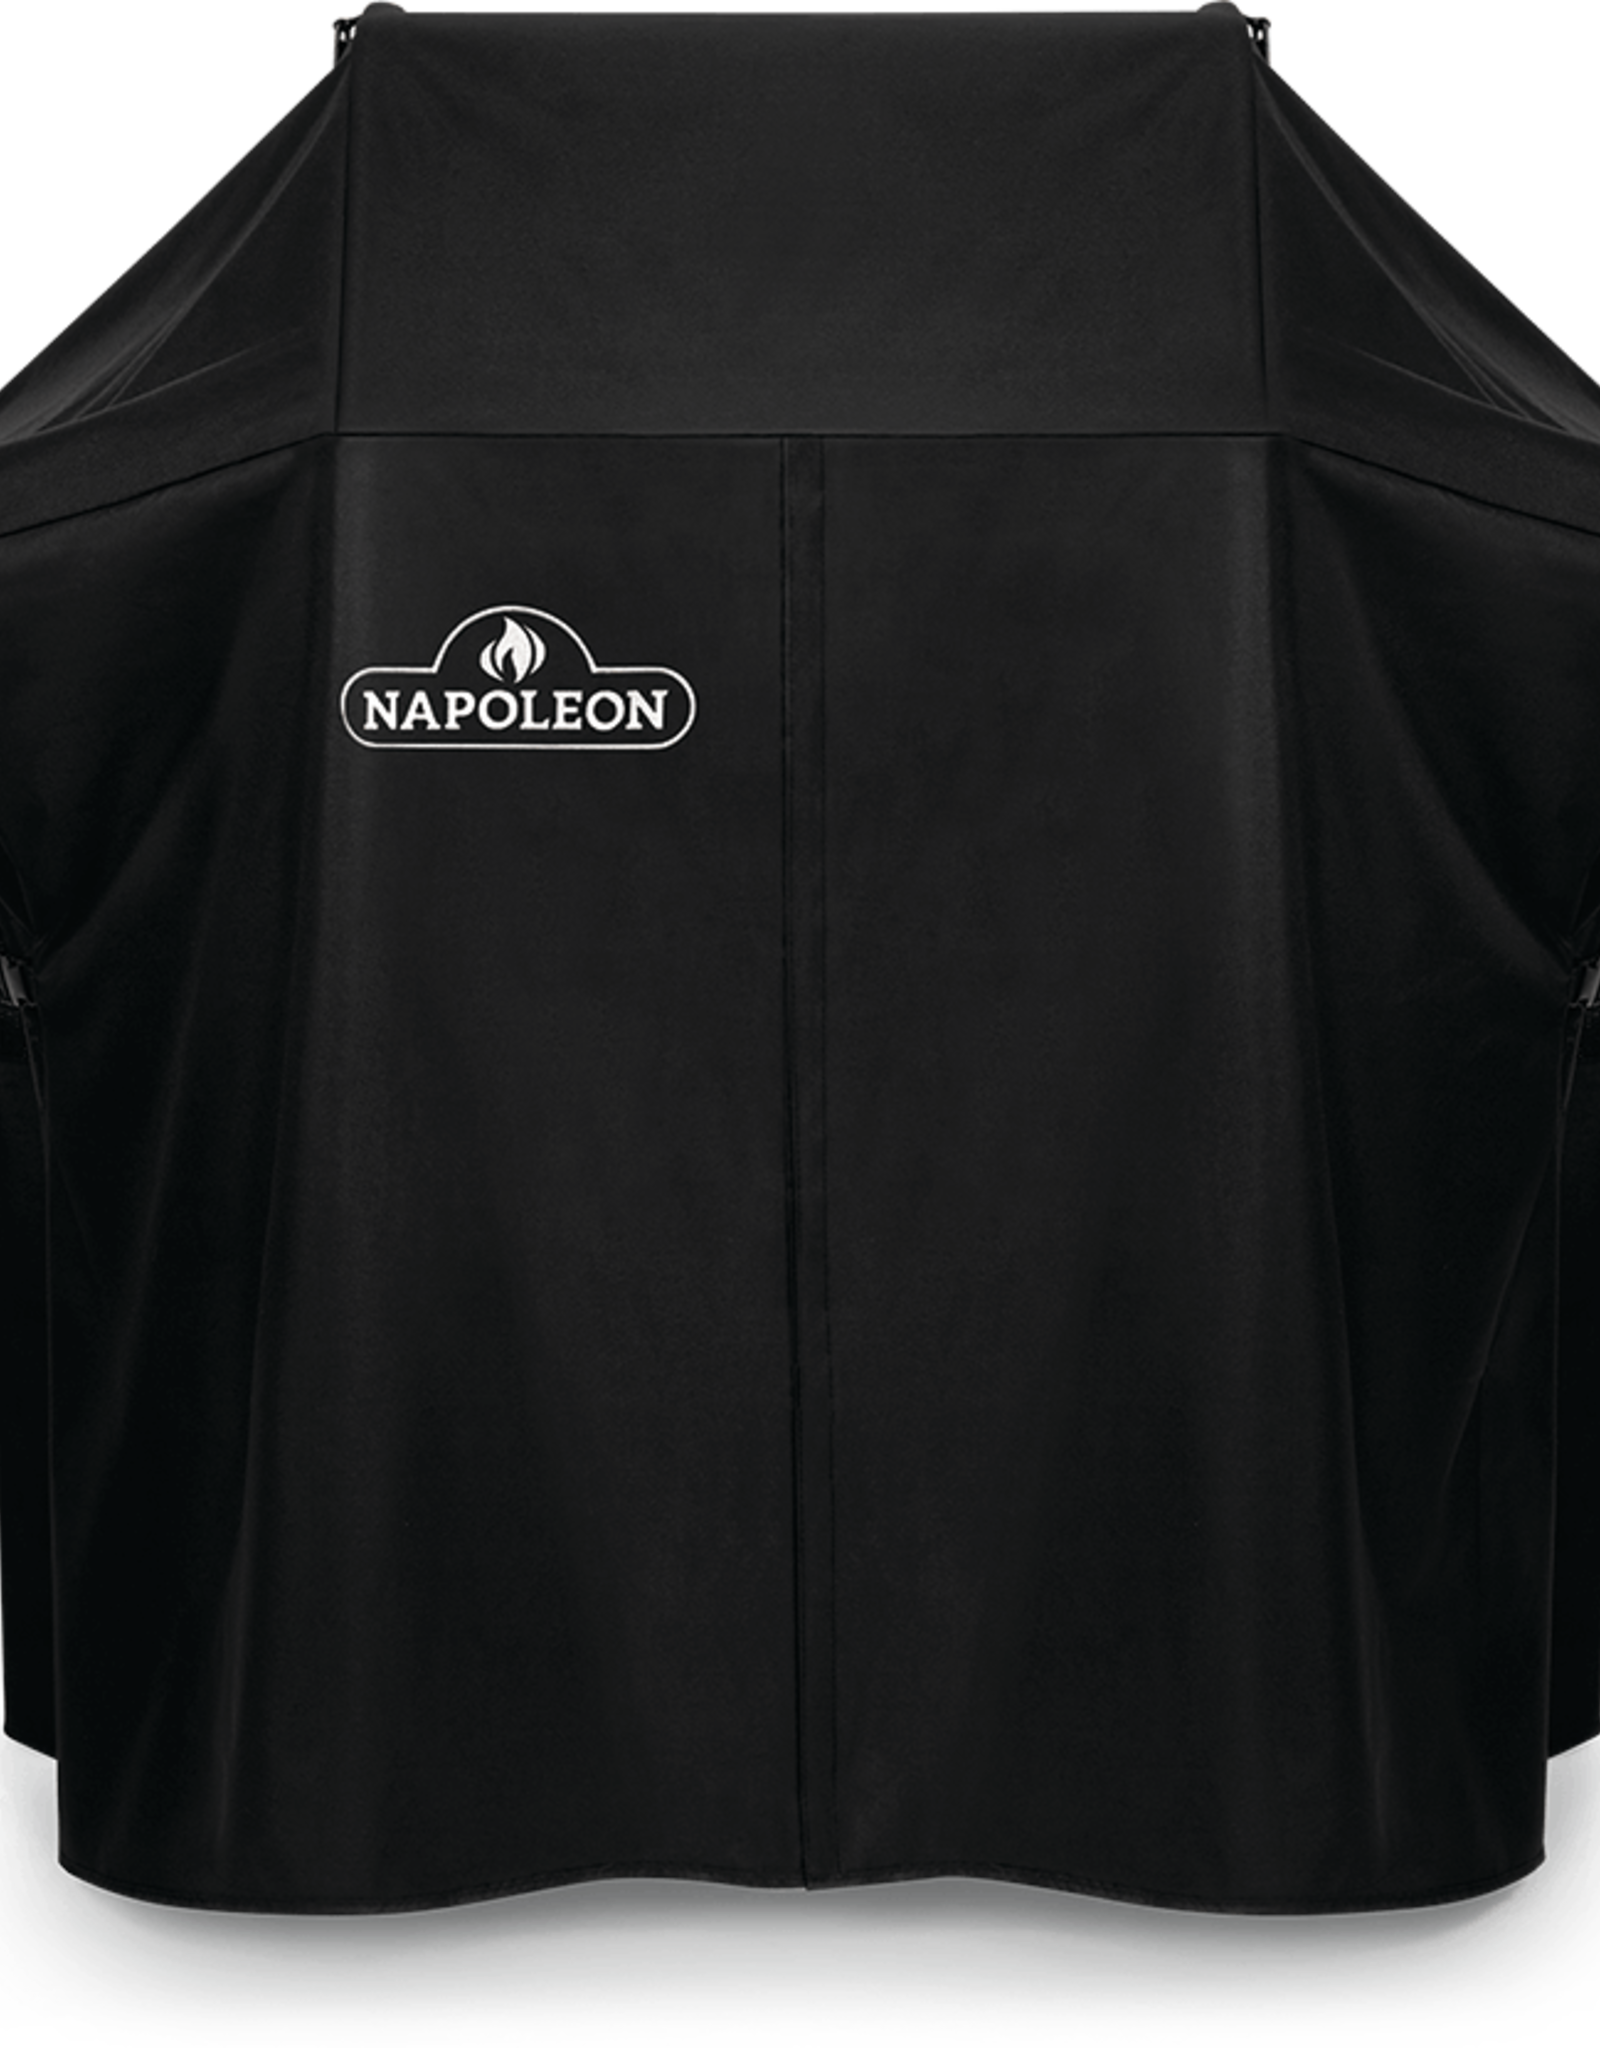 Napoleon Napoleon Rogue® 525 Series Grill Cover (Shelves Up) - 61527